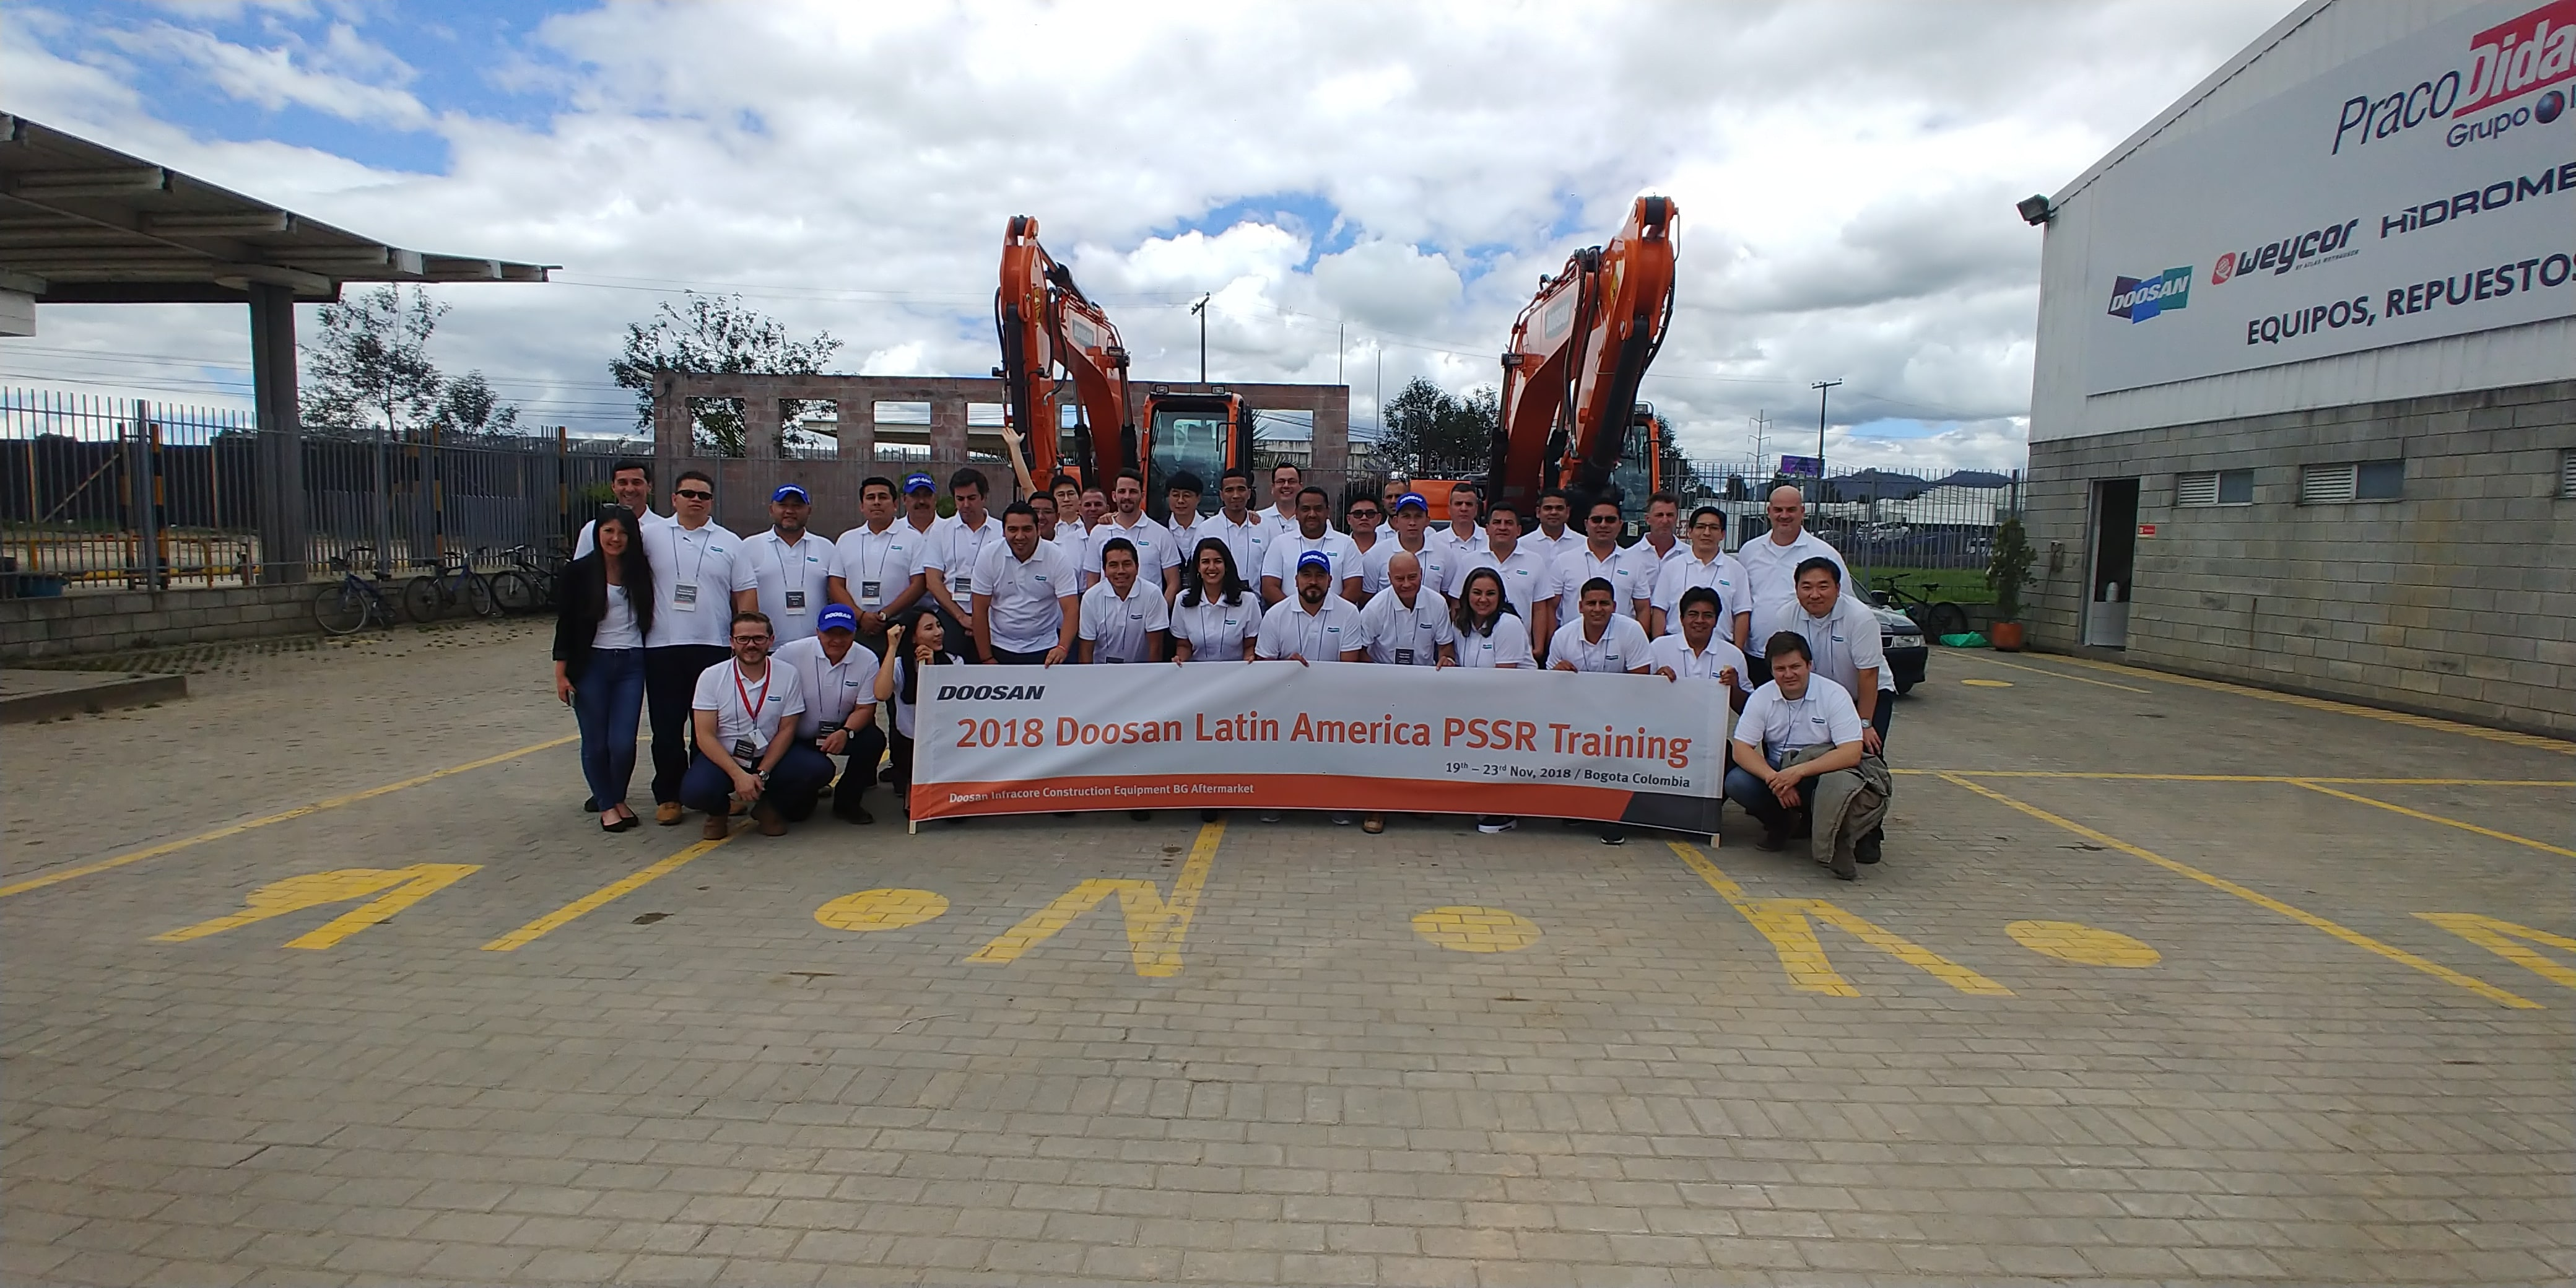 Doosan Latin America PSSR Training 2018